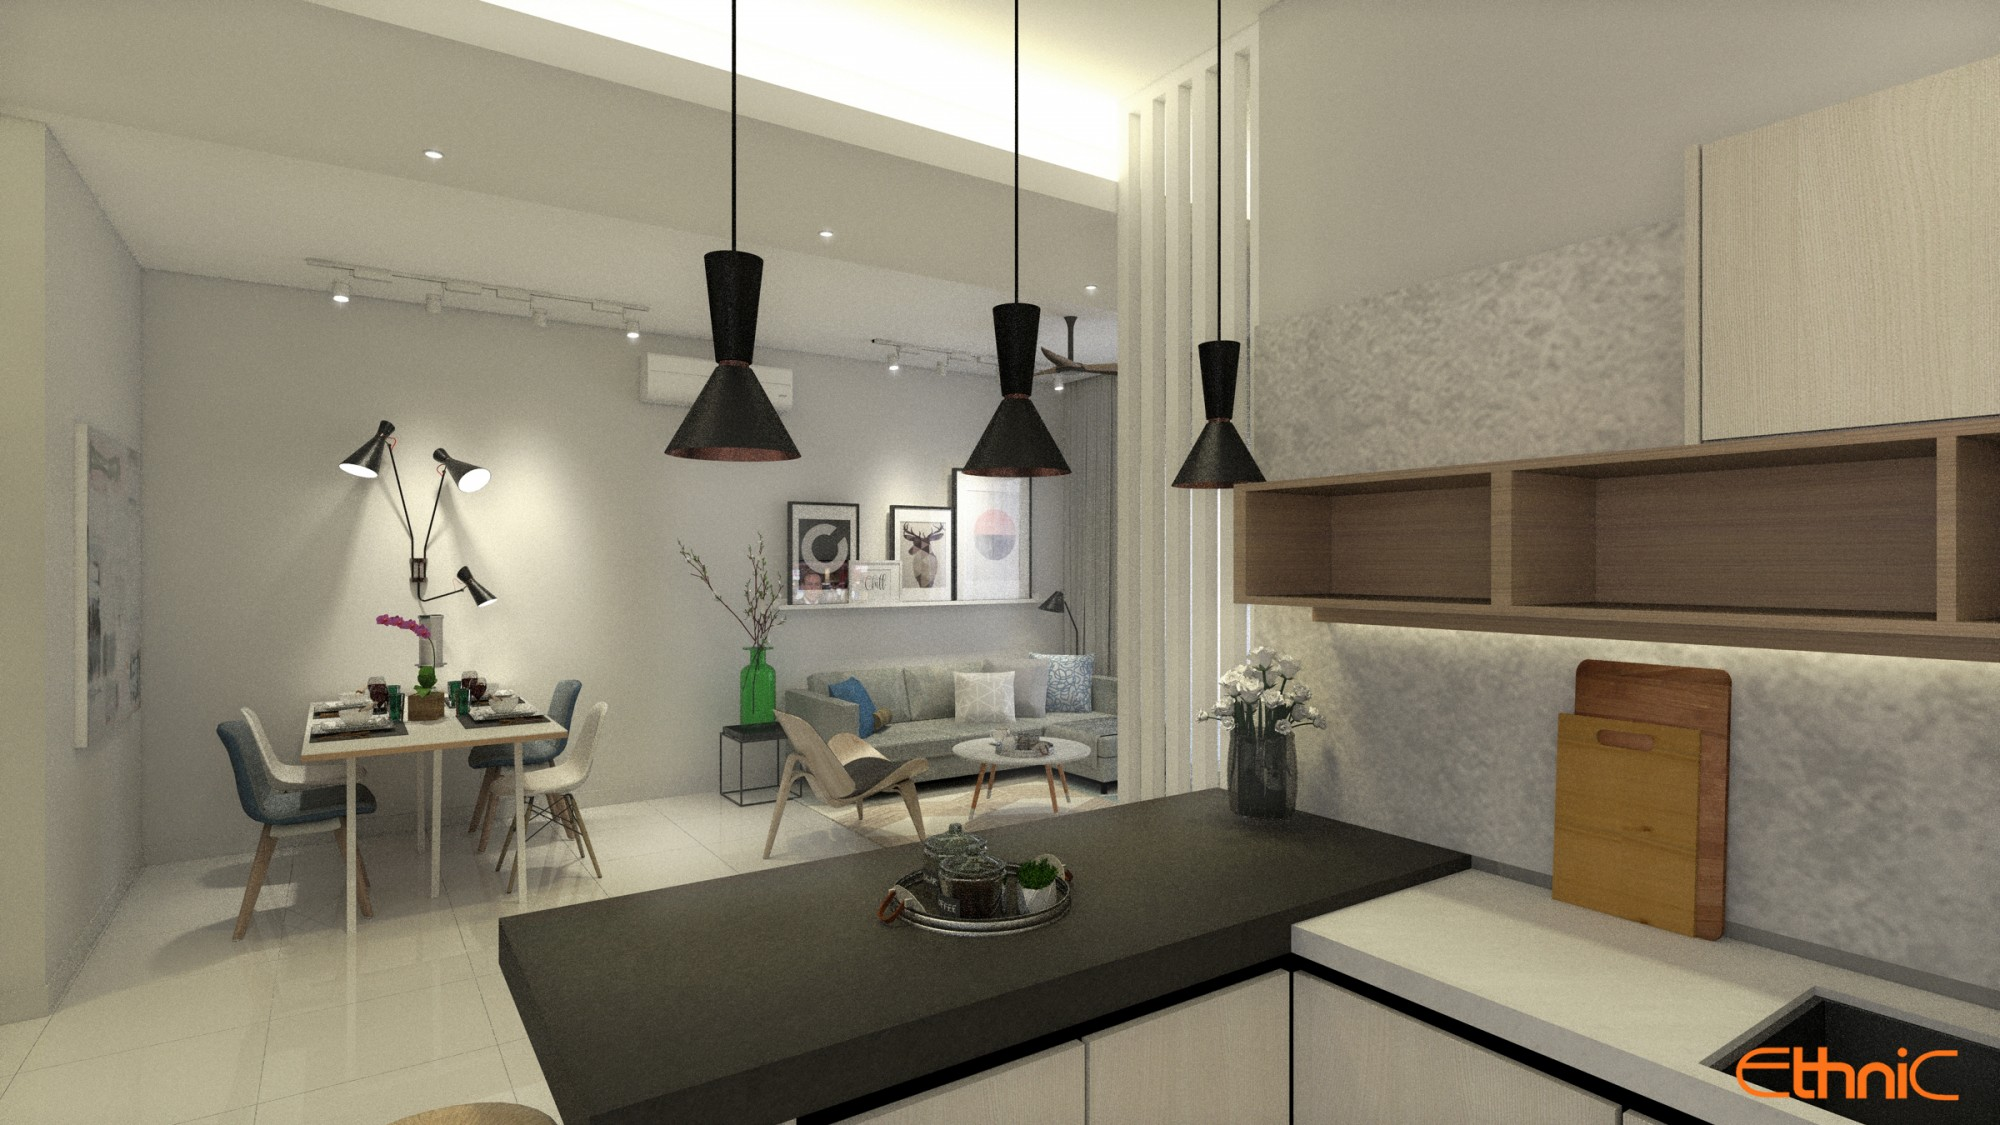 Penang Interior Design Renovation Build Ethnic ID